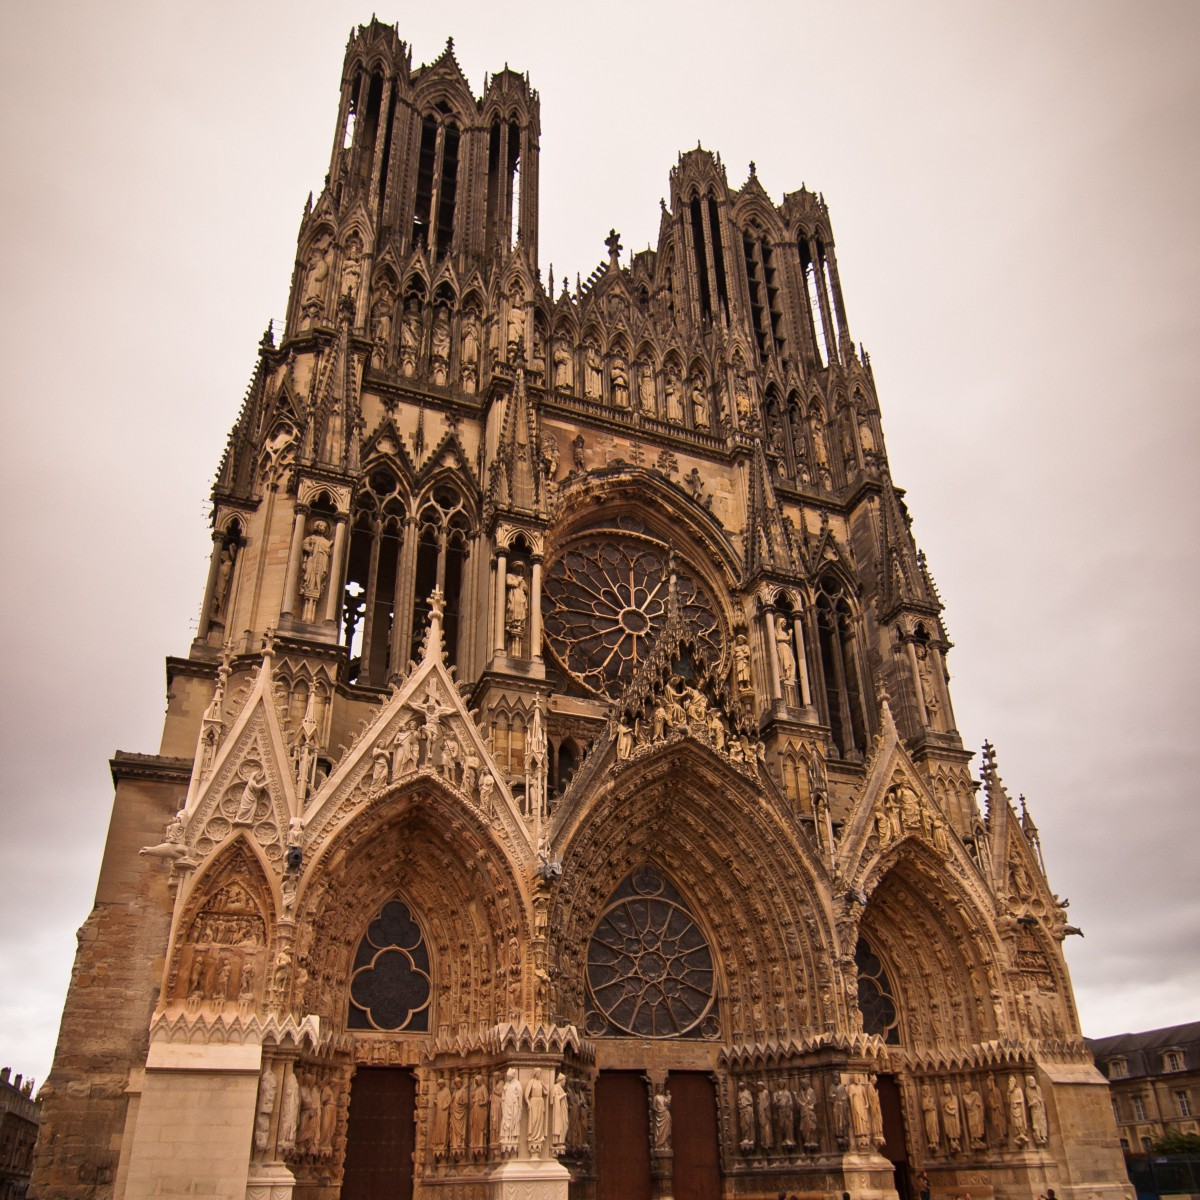 architecture history hidden gothic ornate reims future web cathedral medium maroon5 1211 2005